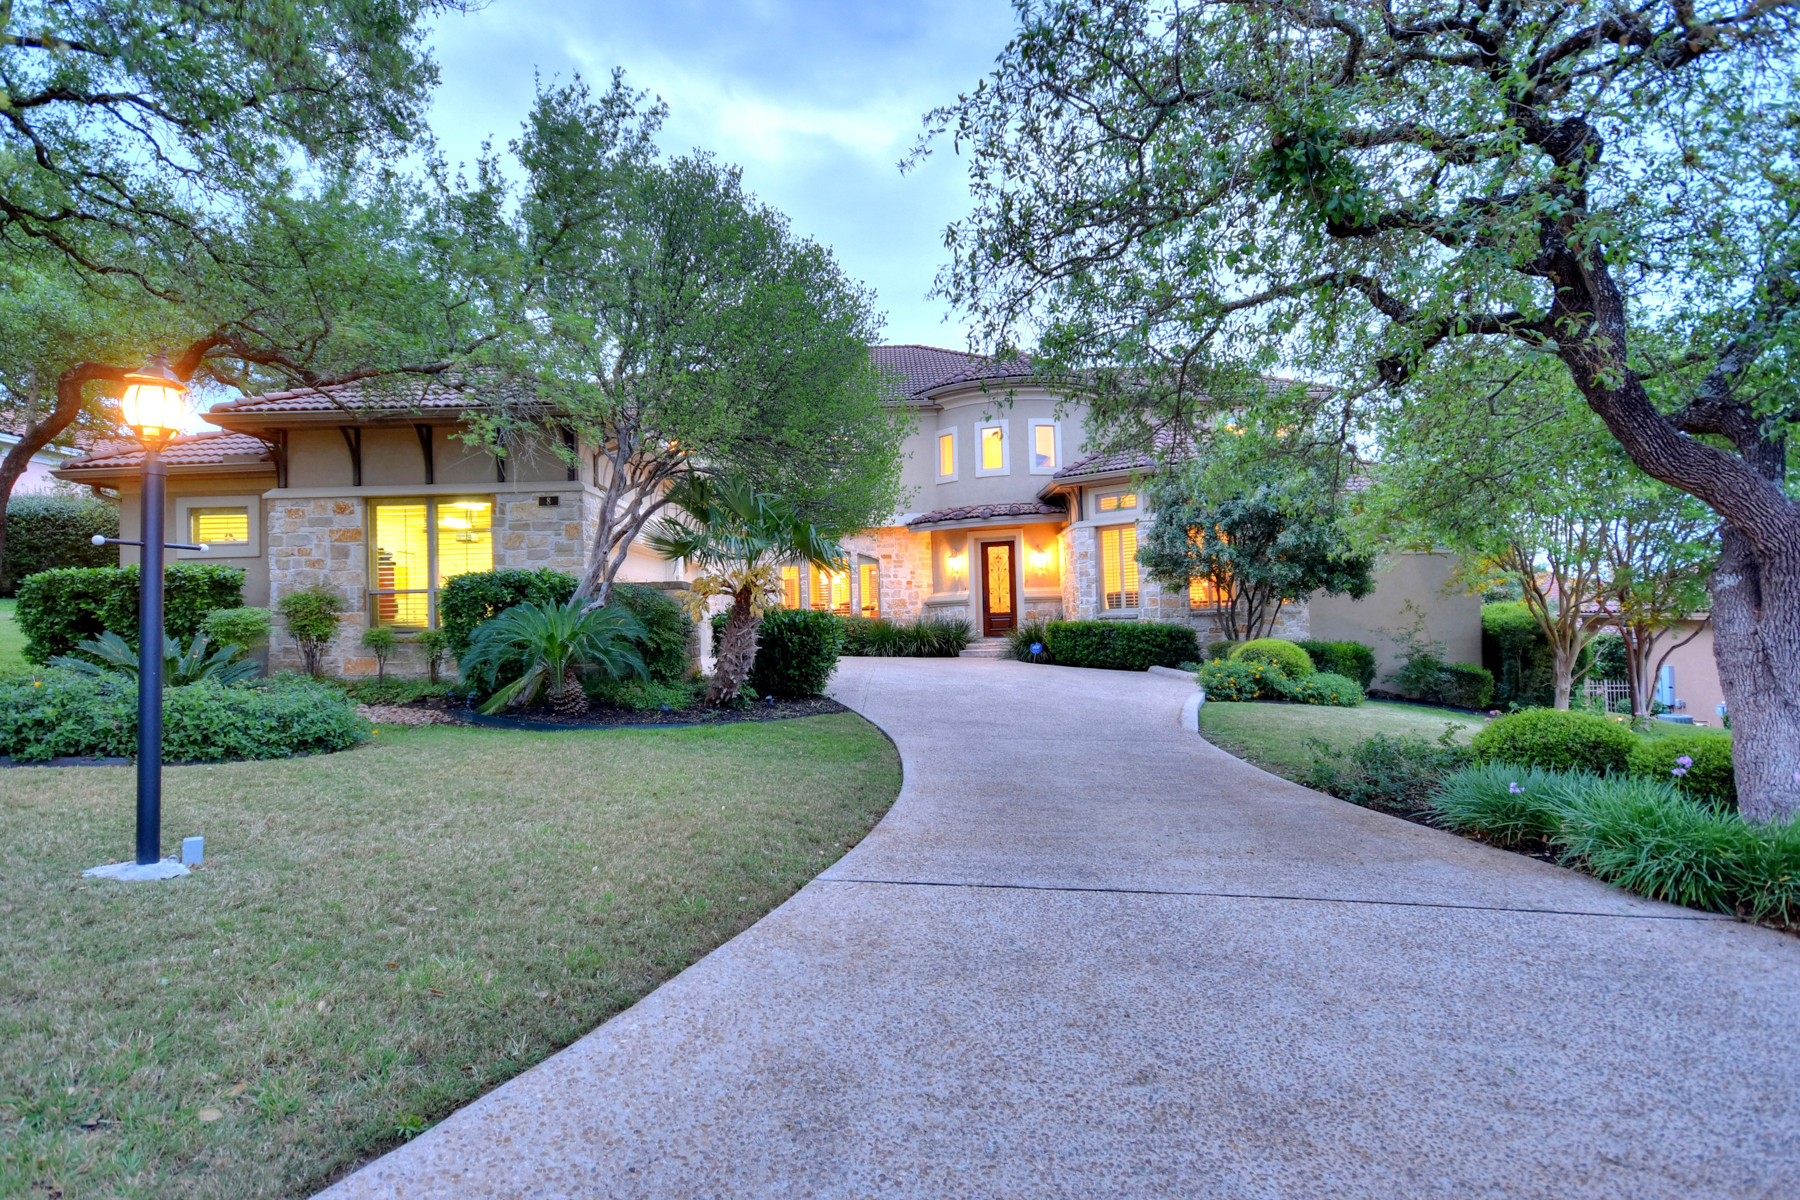 Single Family Home for Sale at Luxurious and Gorgeous Home in The Dominion 8 Legends Ct The Dominion, San Antonio, Texas, 78257 United States